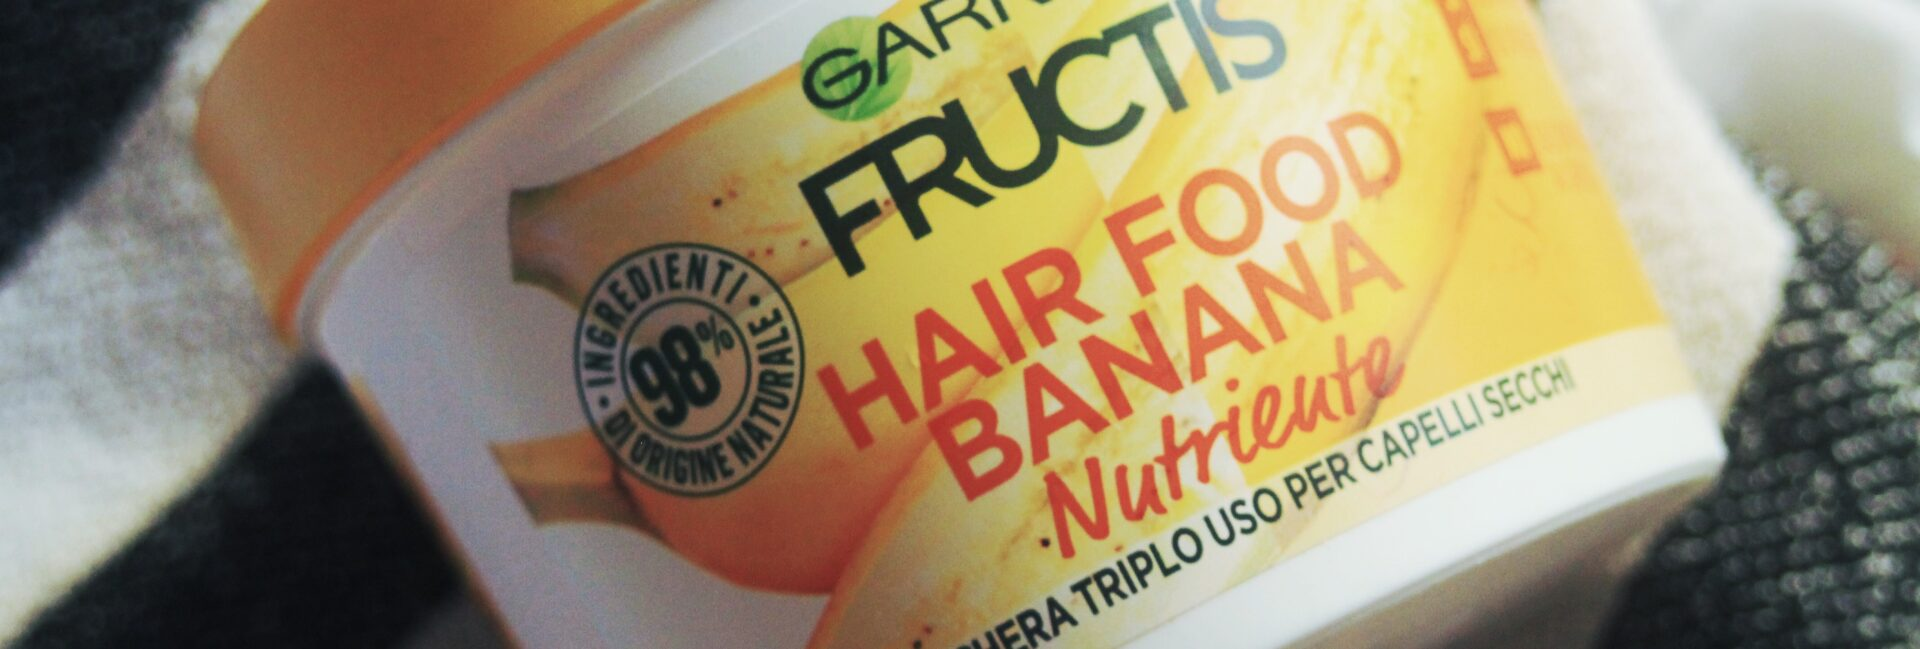 Hair food banana garnier